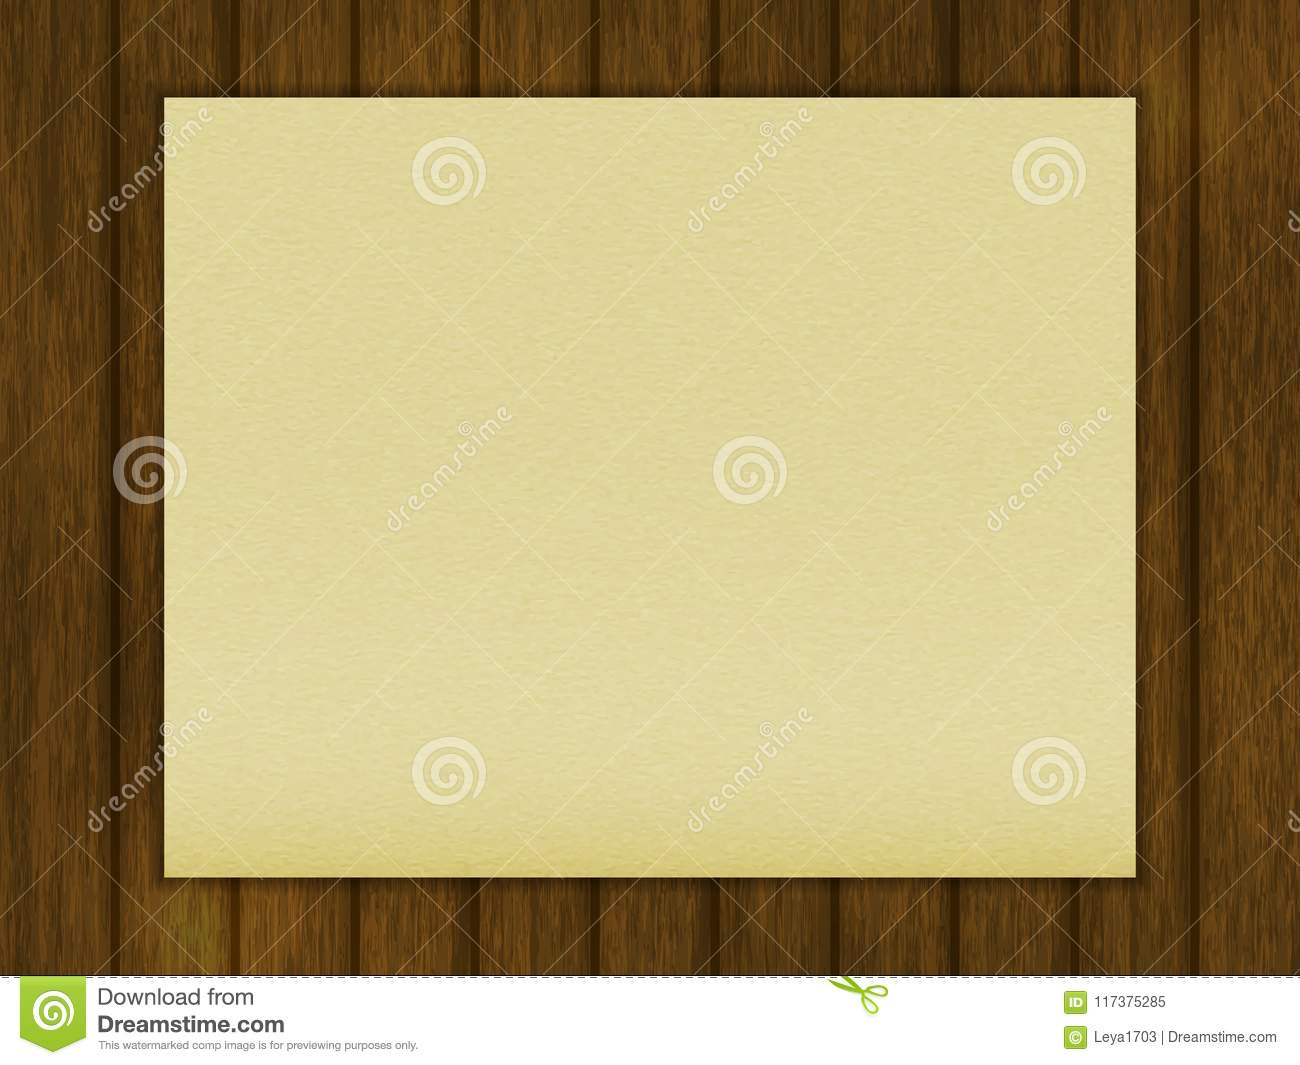 Blank Table Template | Template For Your Design A Blank Sheet Of Paper On A Wooden Table